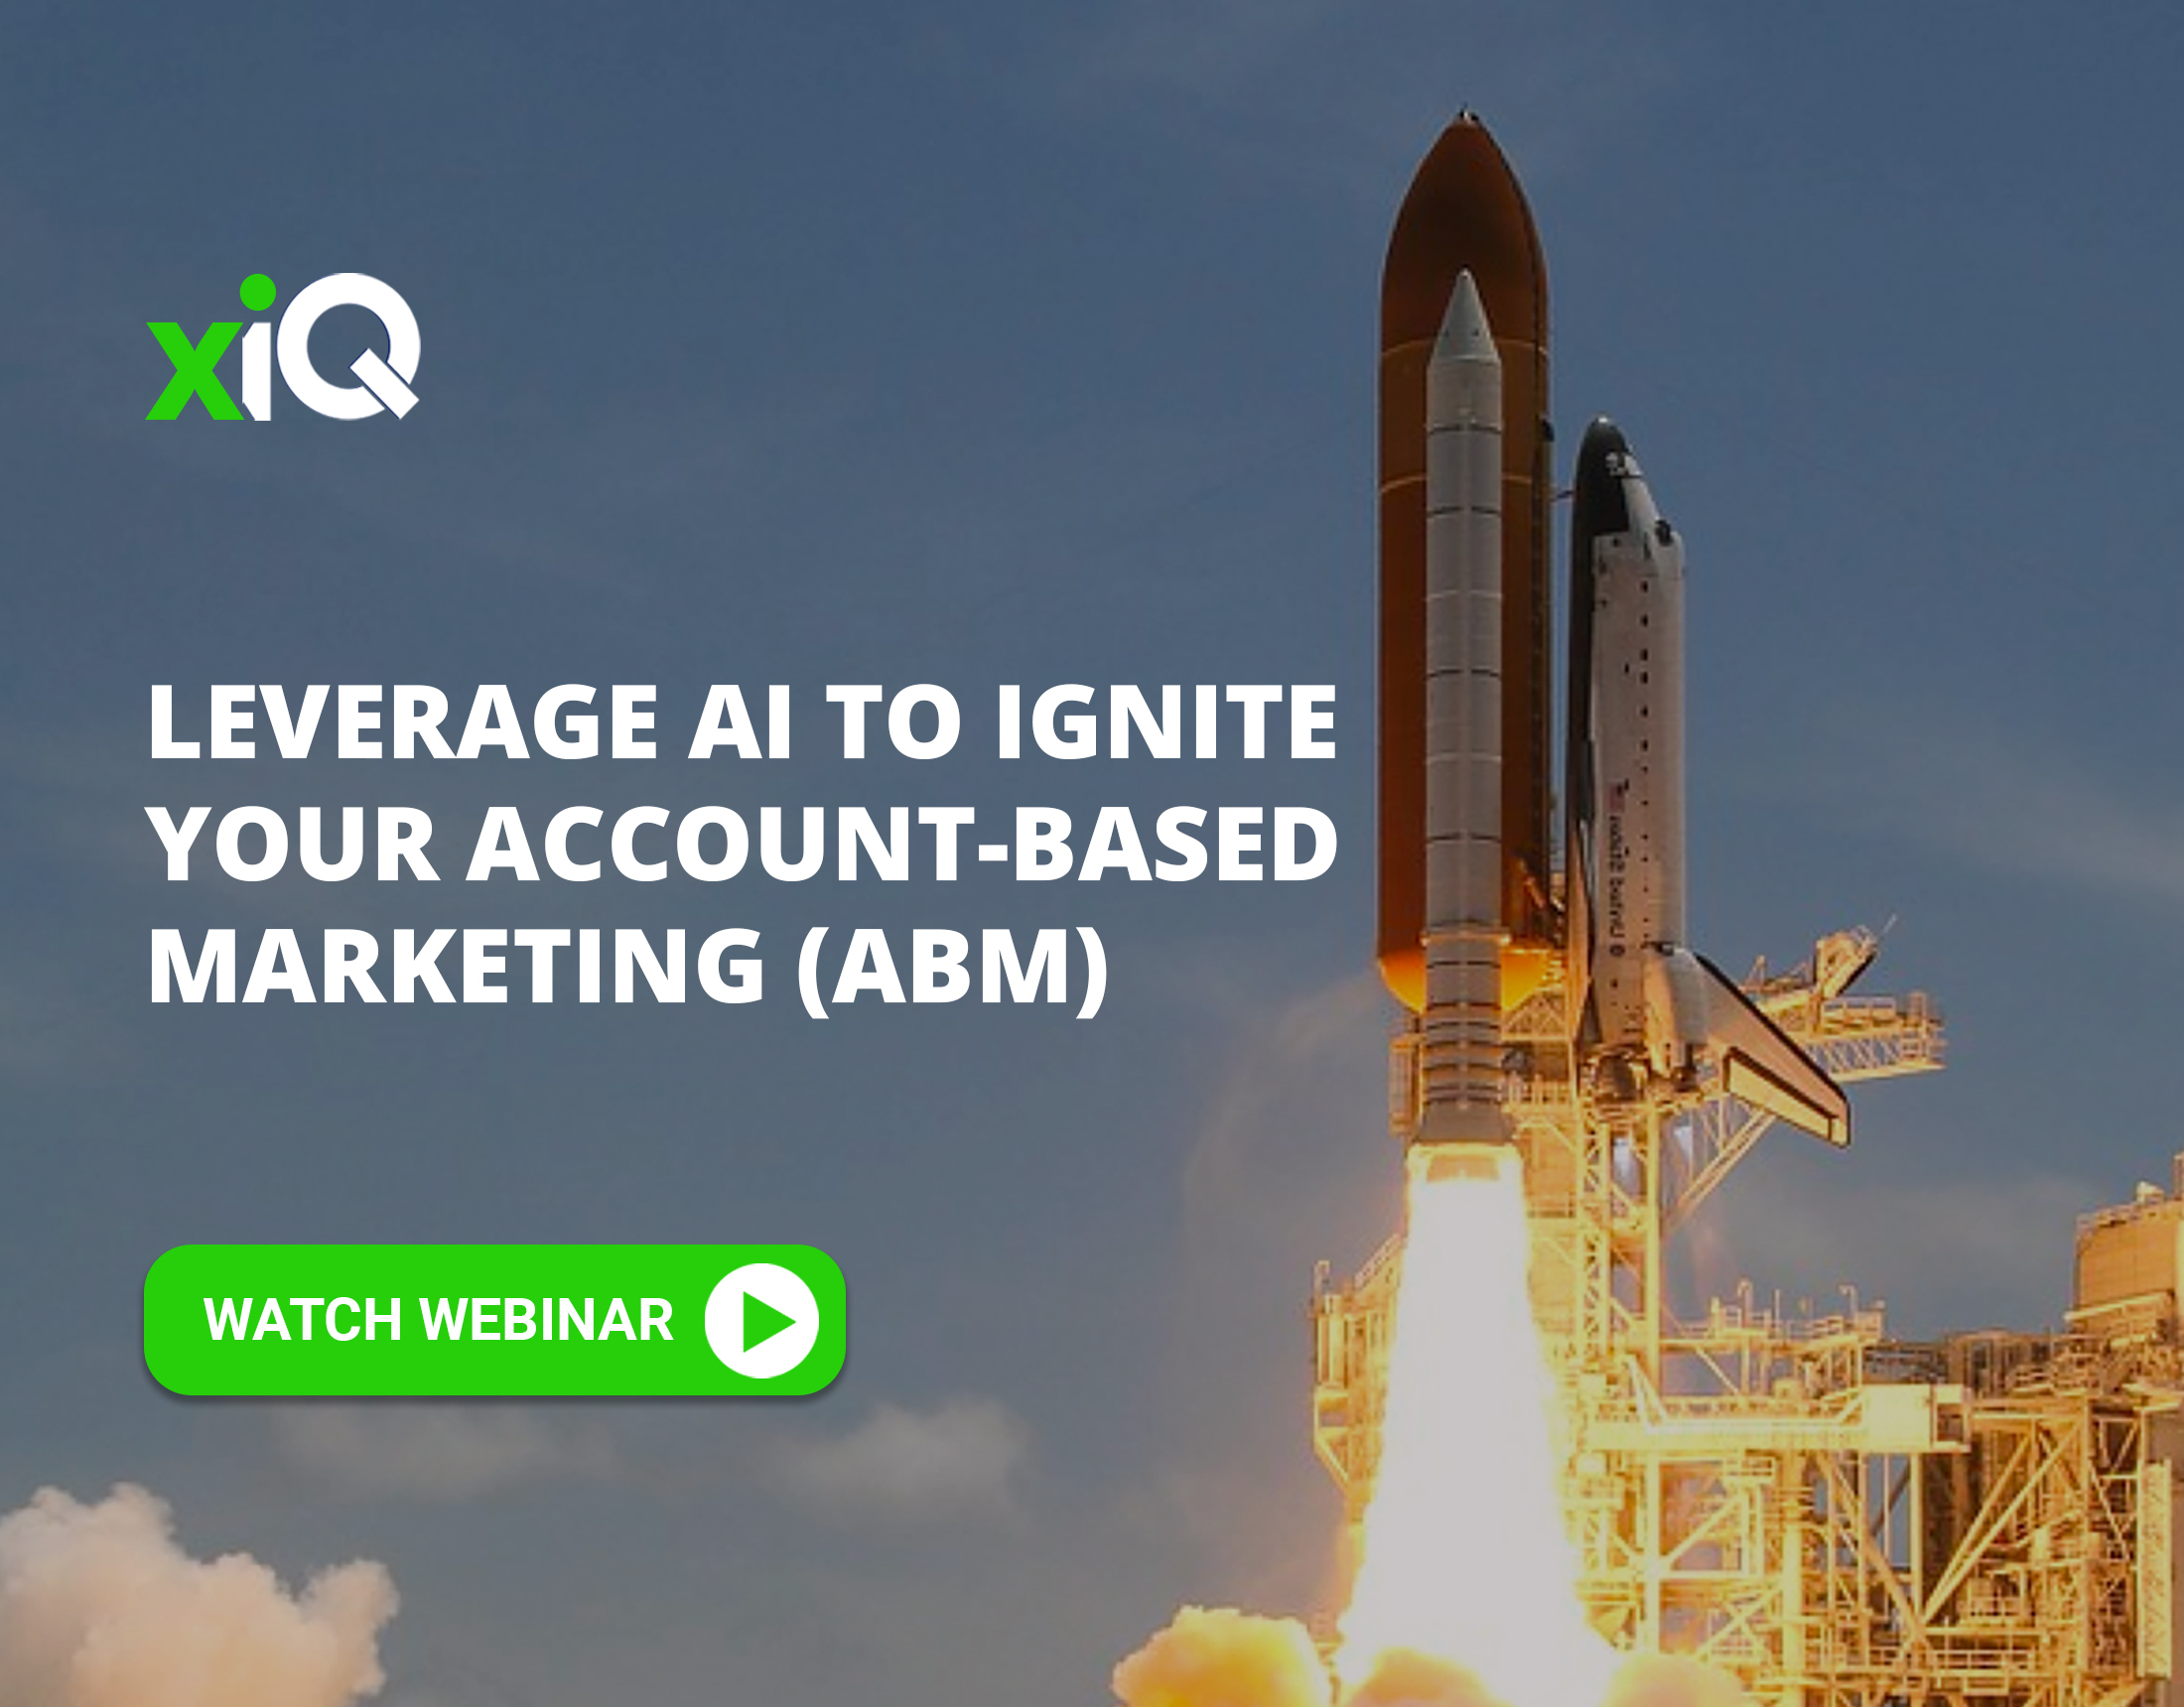 Leverage AI to ignite your Account-Based Marketing (ABM)